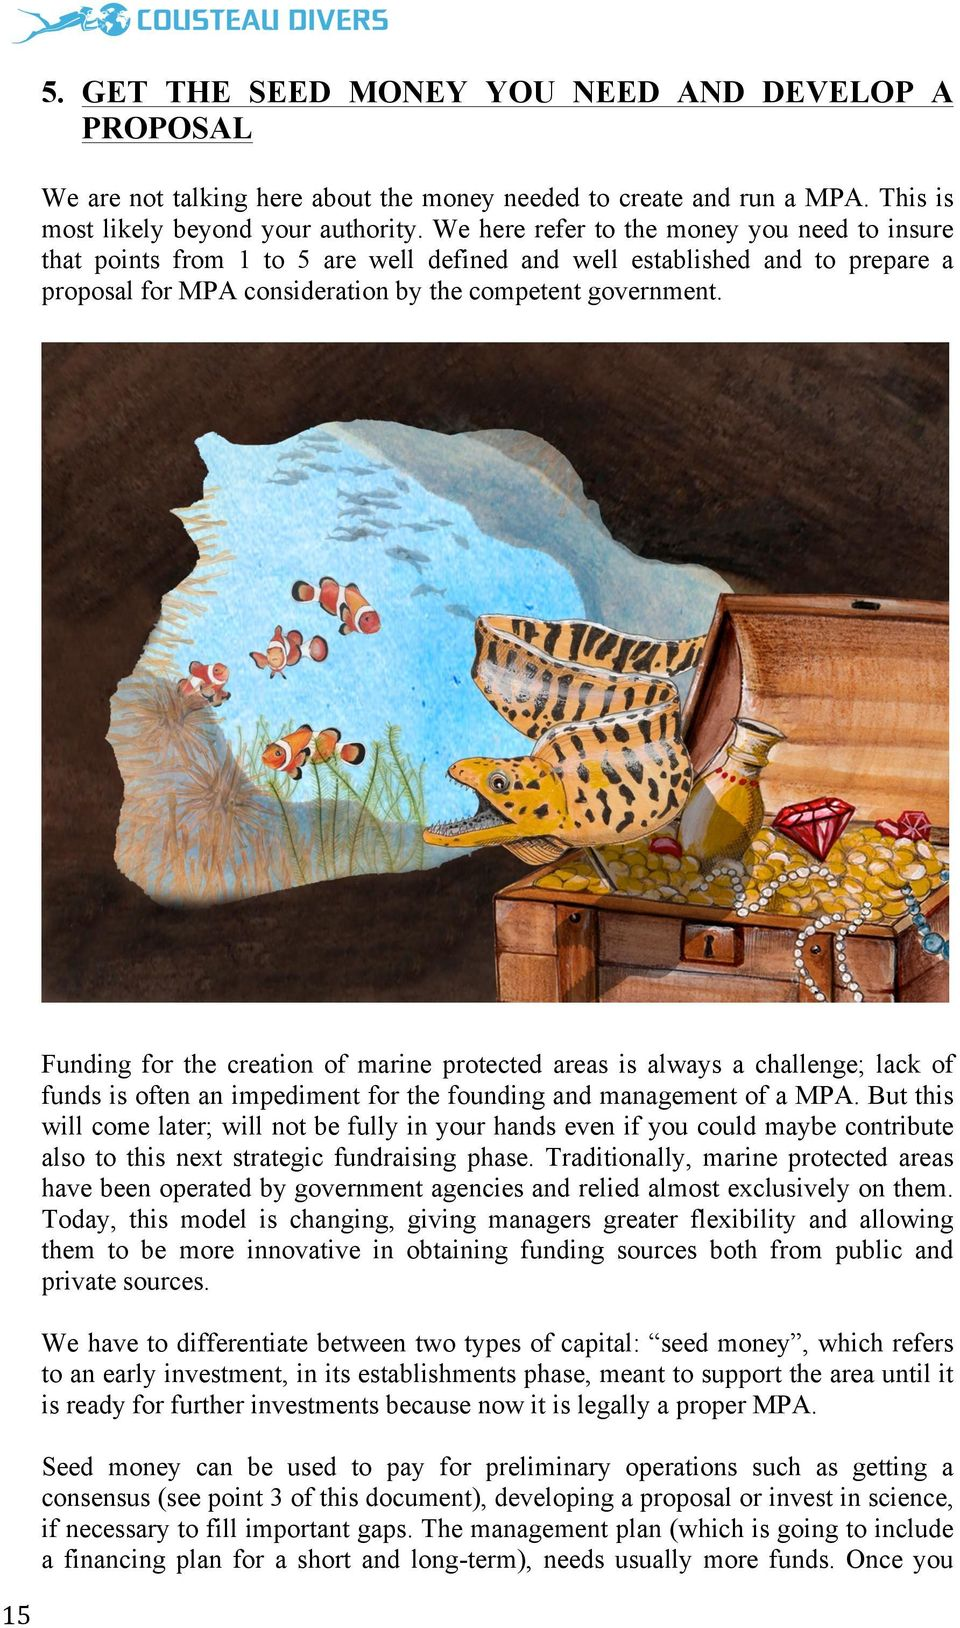 Funding for the creation of marine protected areas is always a challenge; lack of funds is often an impediment for the founding and management of a MPA.